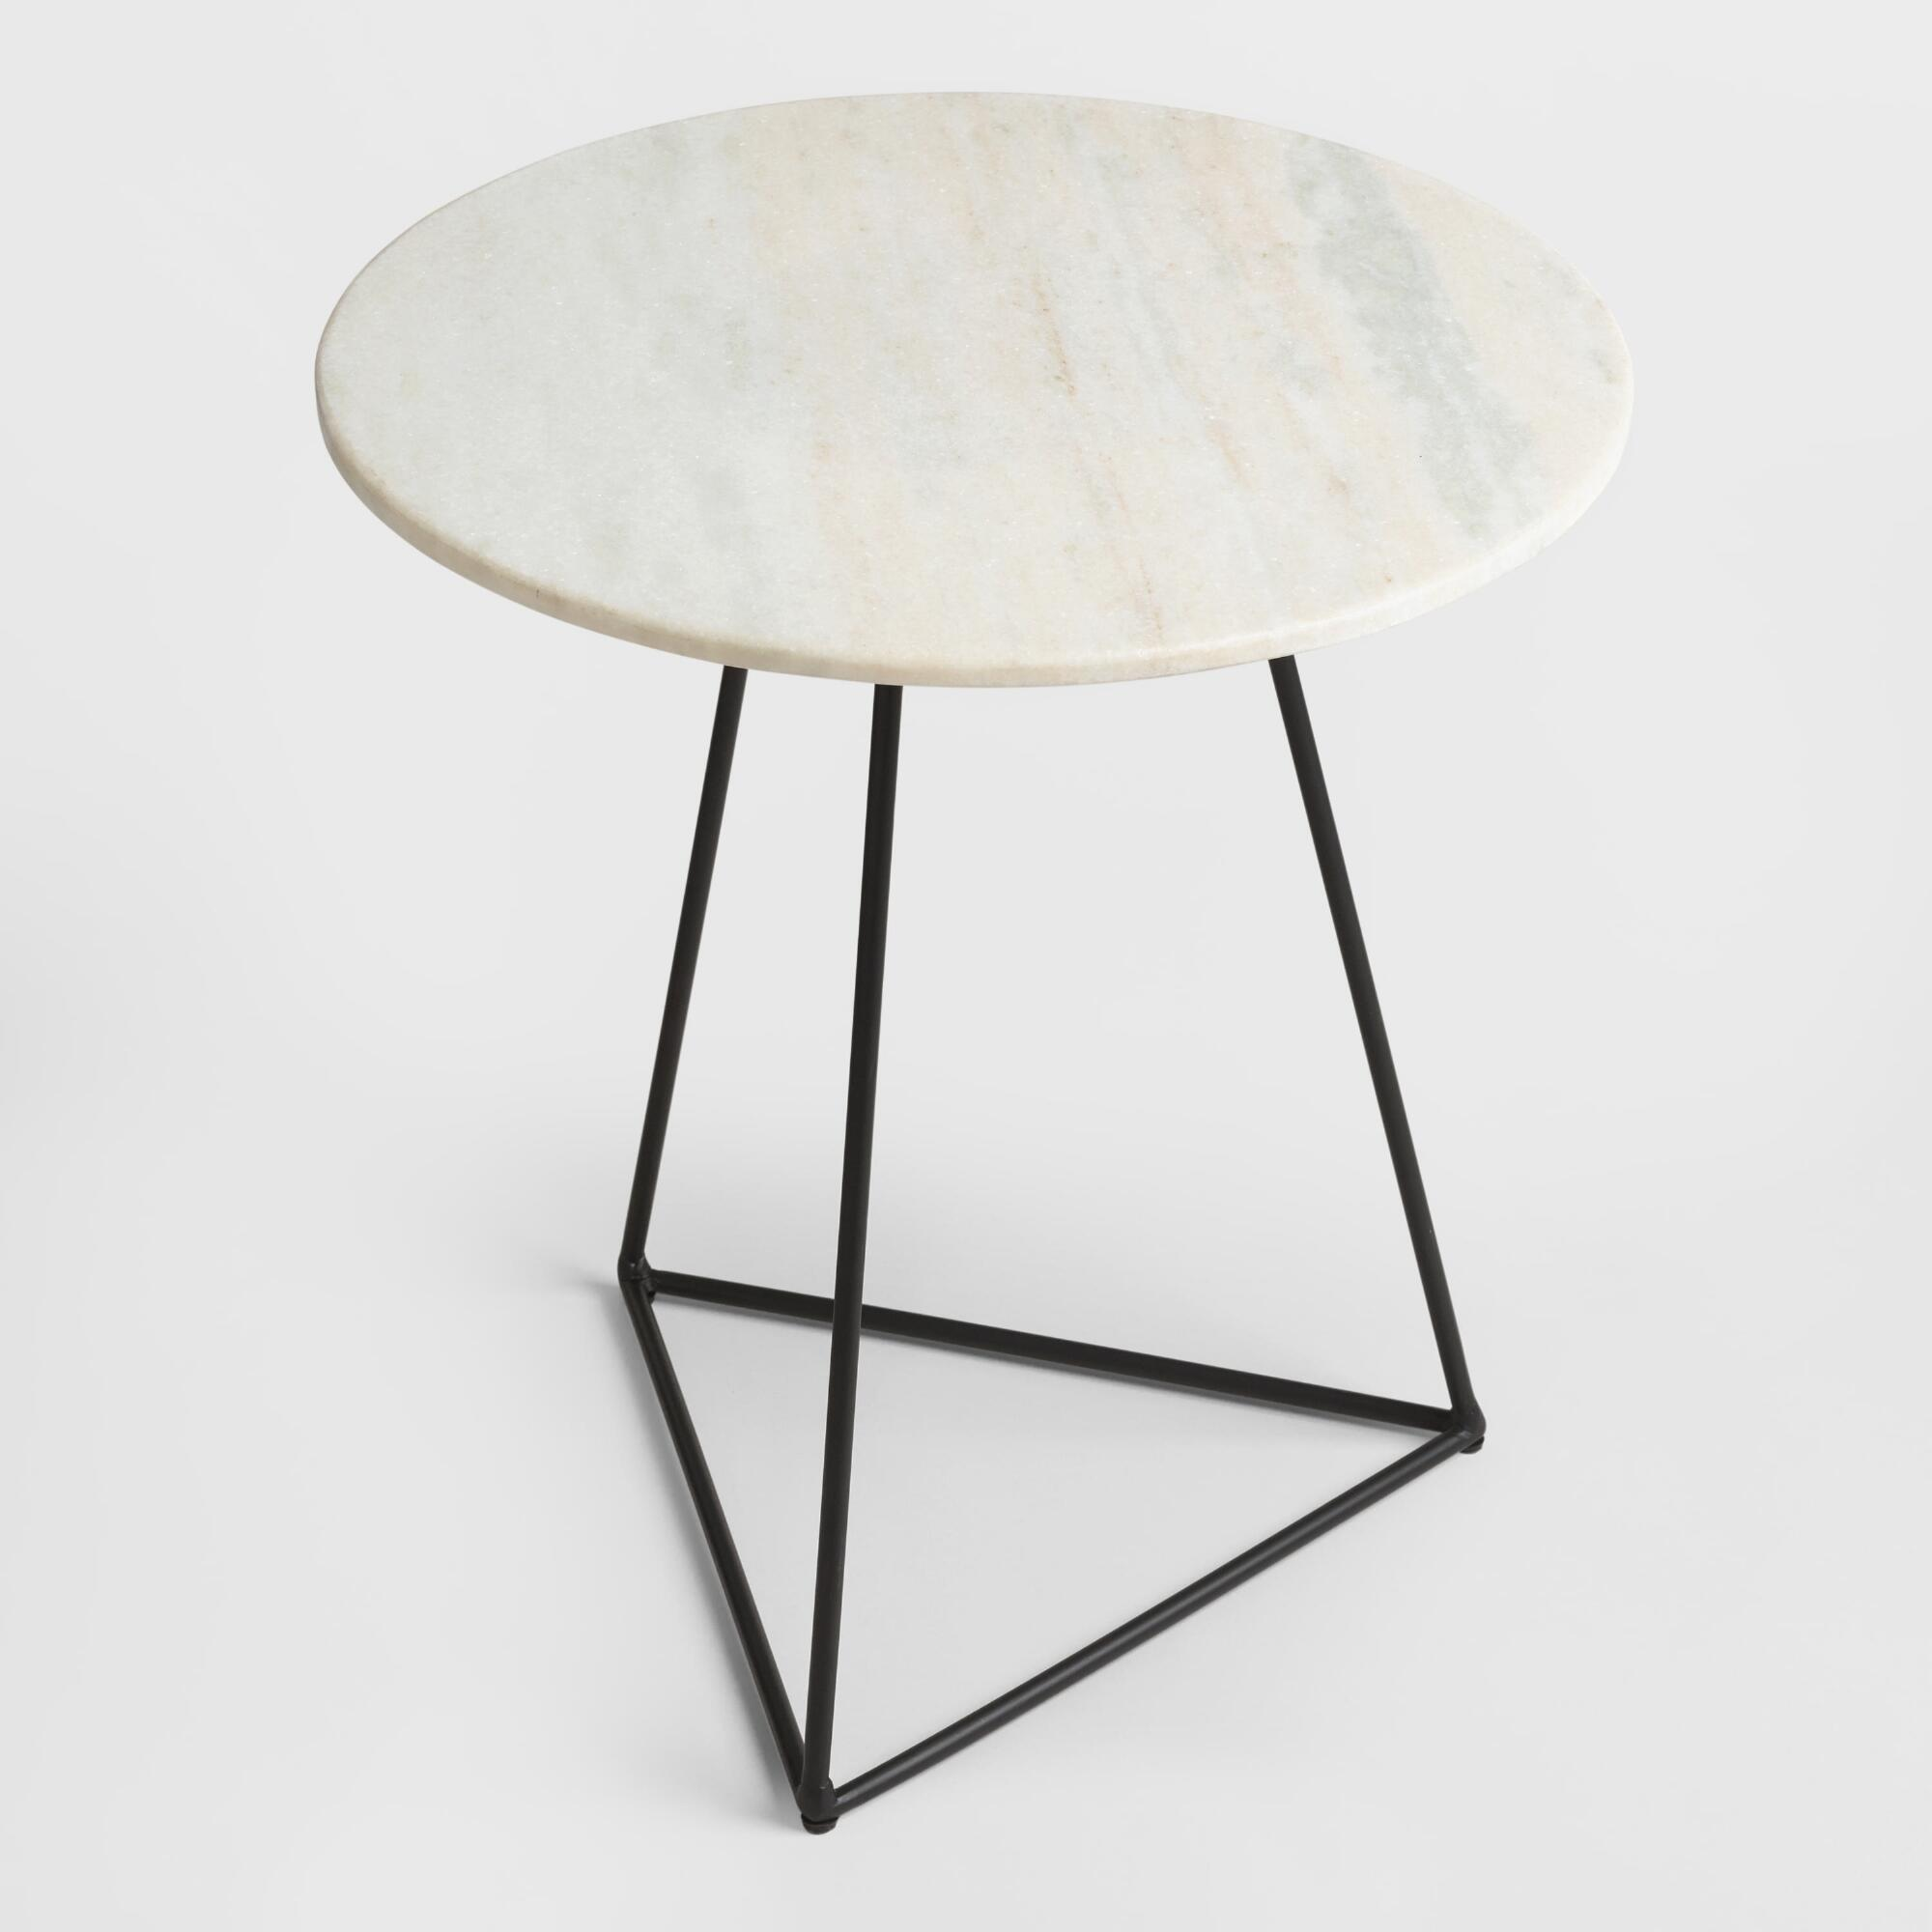 white marble and metal round accent table world market products nate berkus gold side glass tables living room drawer end black mirrored desk target daybed expanding ultra modern